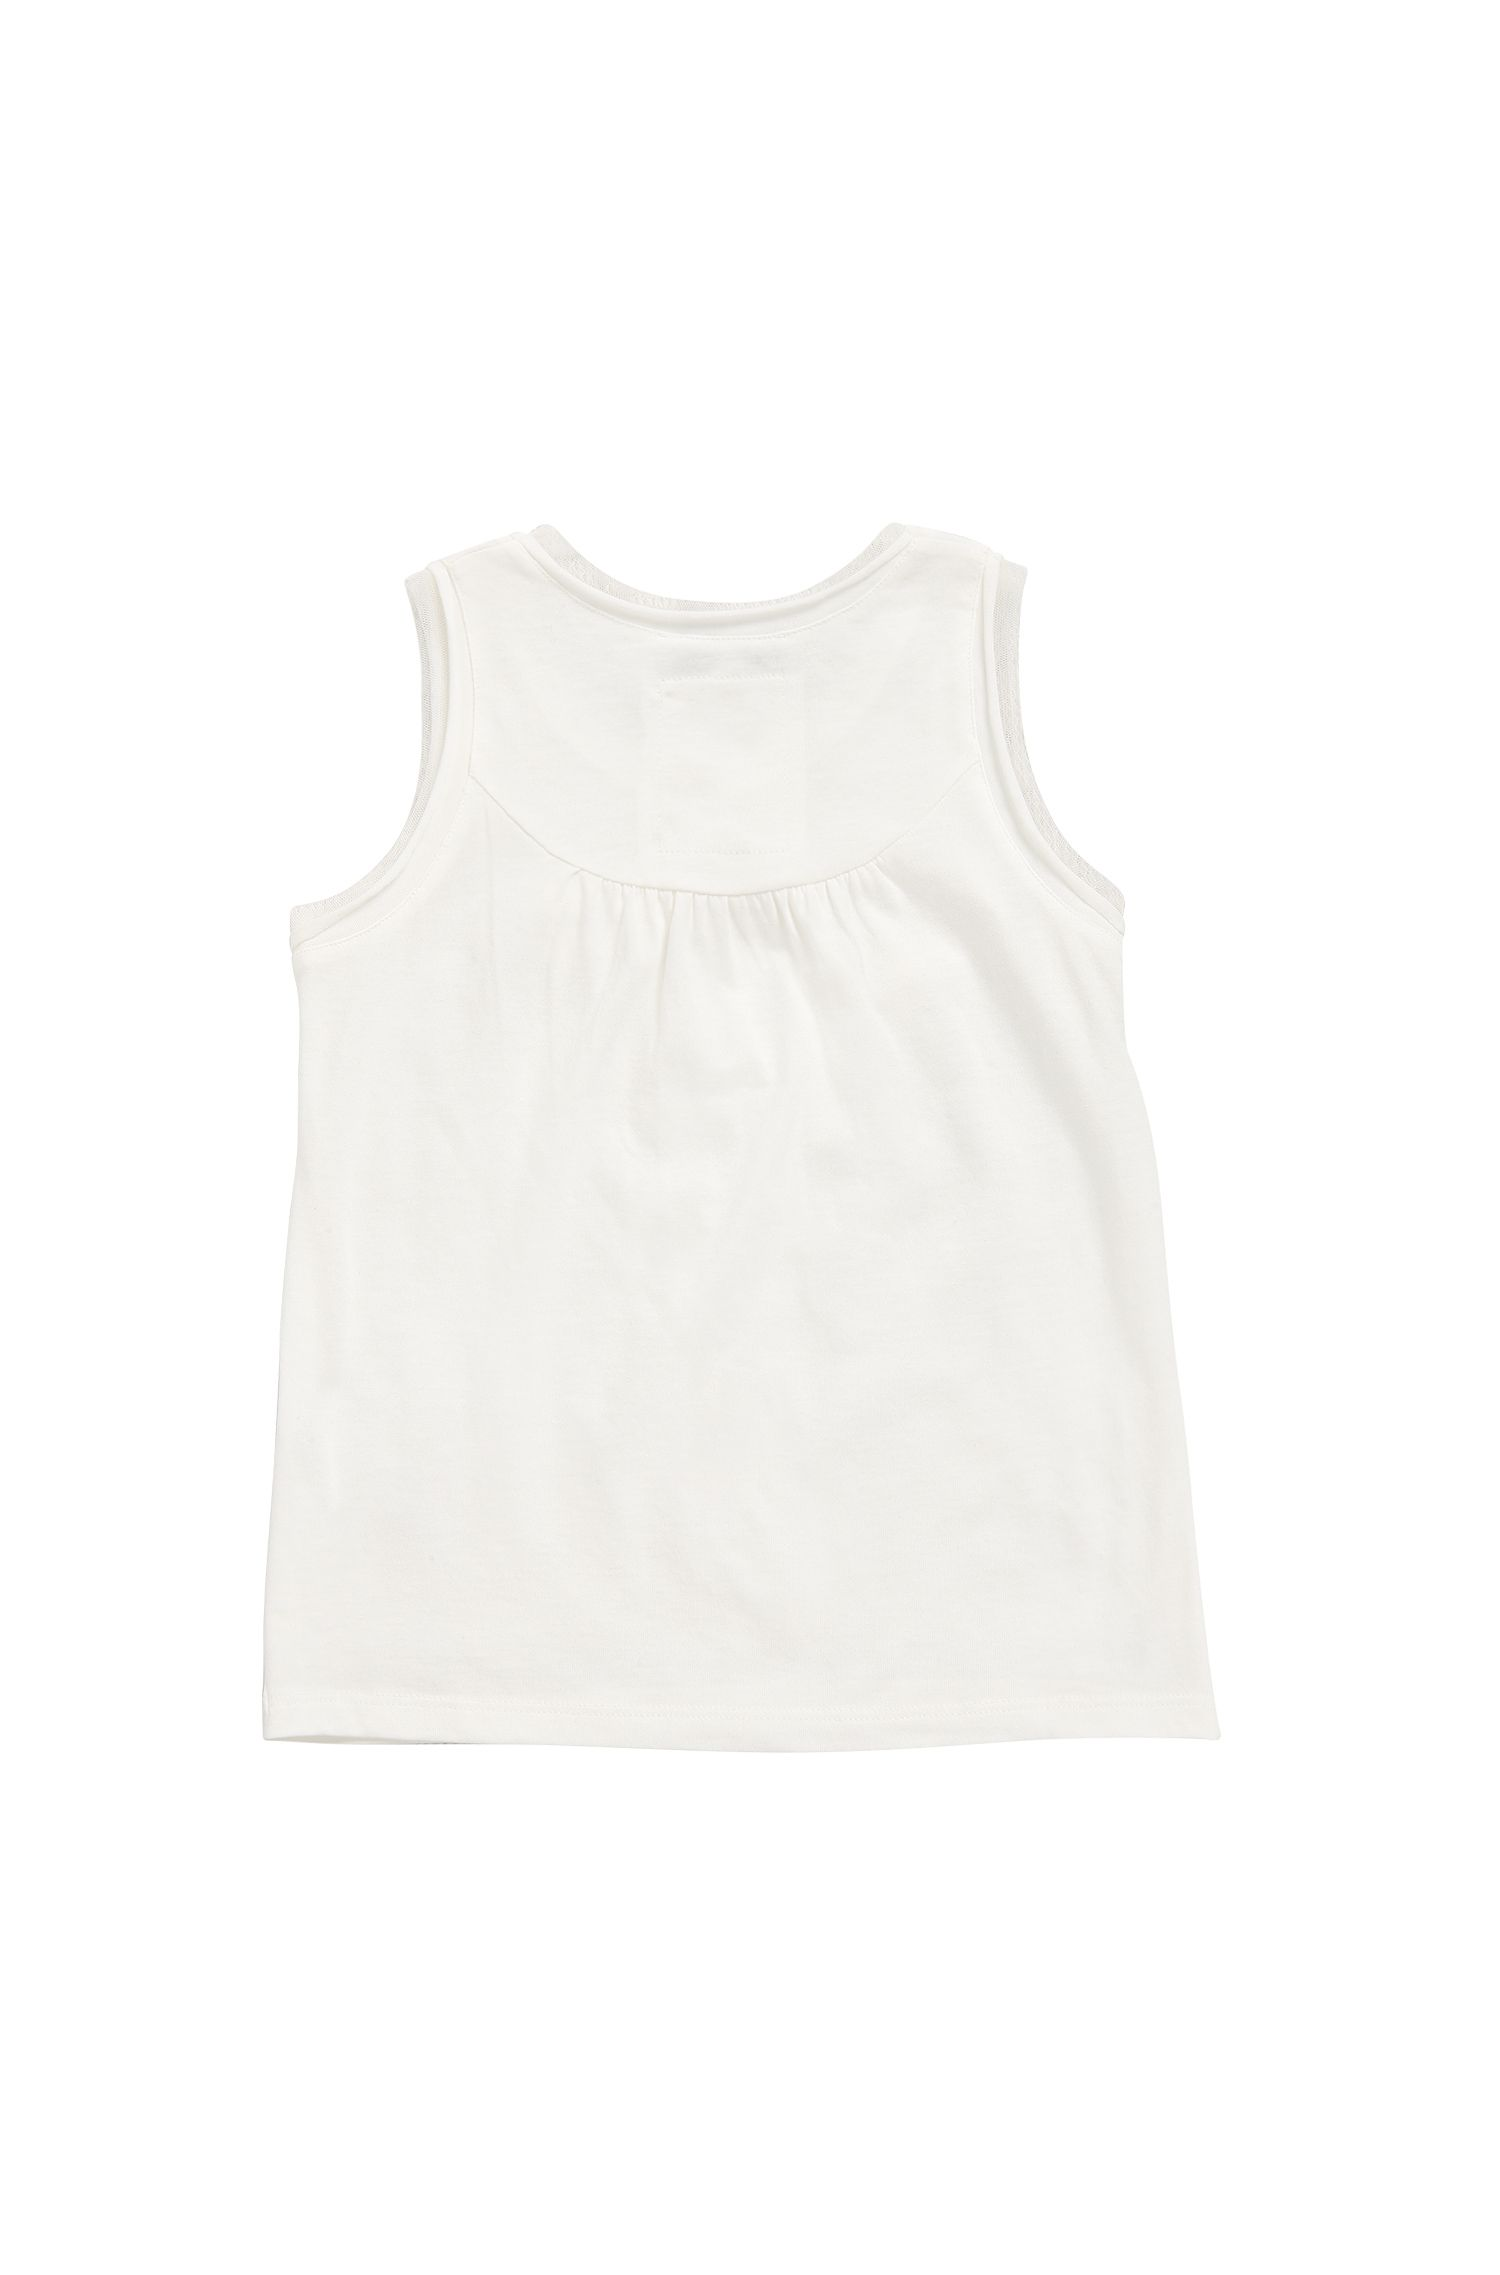 Kids' top in cotton-modal blend with palm-tree print: 'J15336'